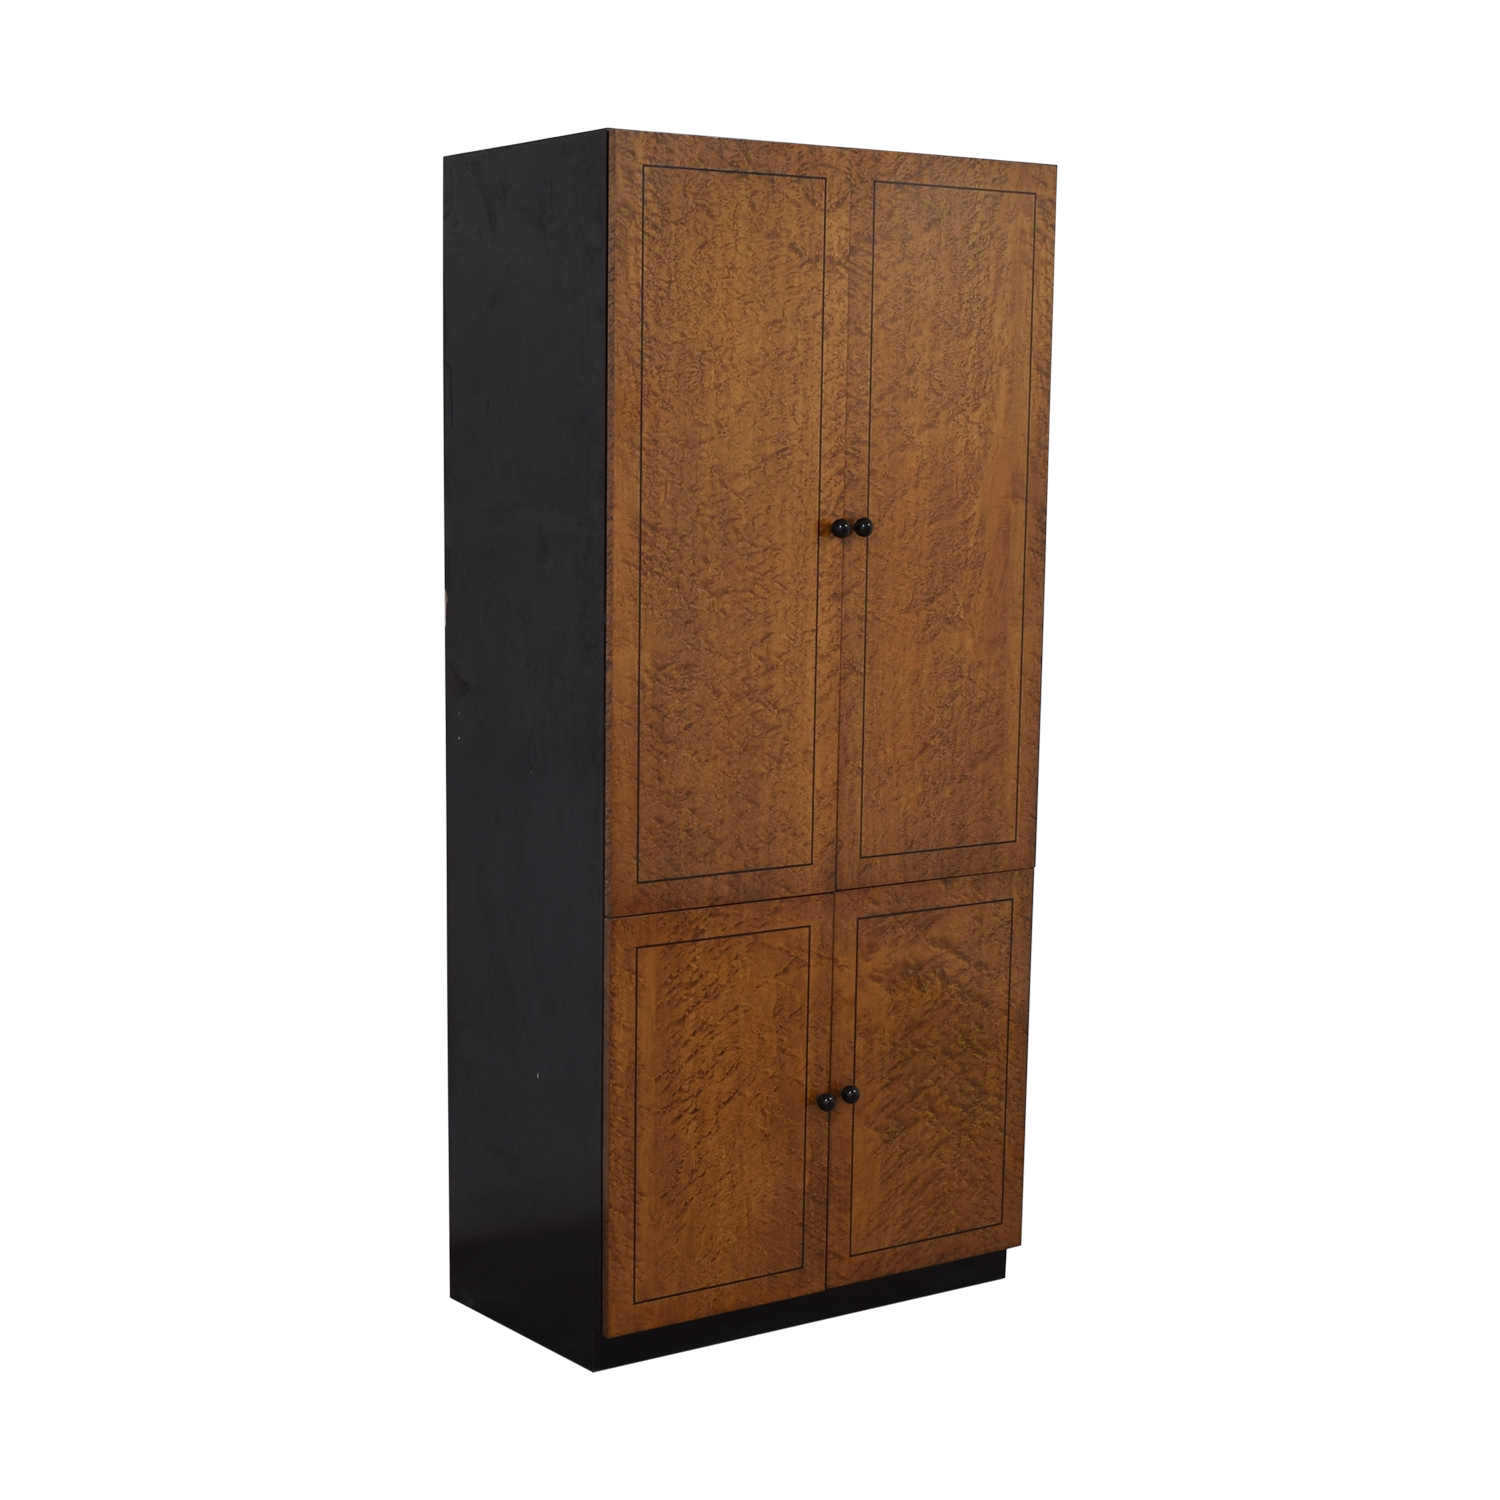 Manhattan Cabinetry Manhattan Cabinetry Tall Bar Cabinet coupon